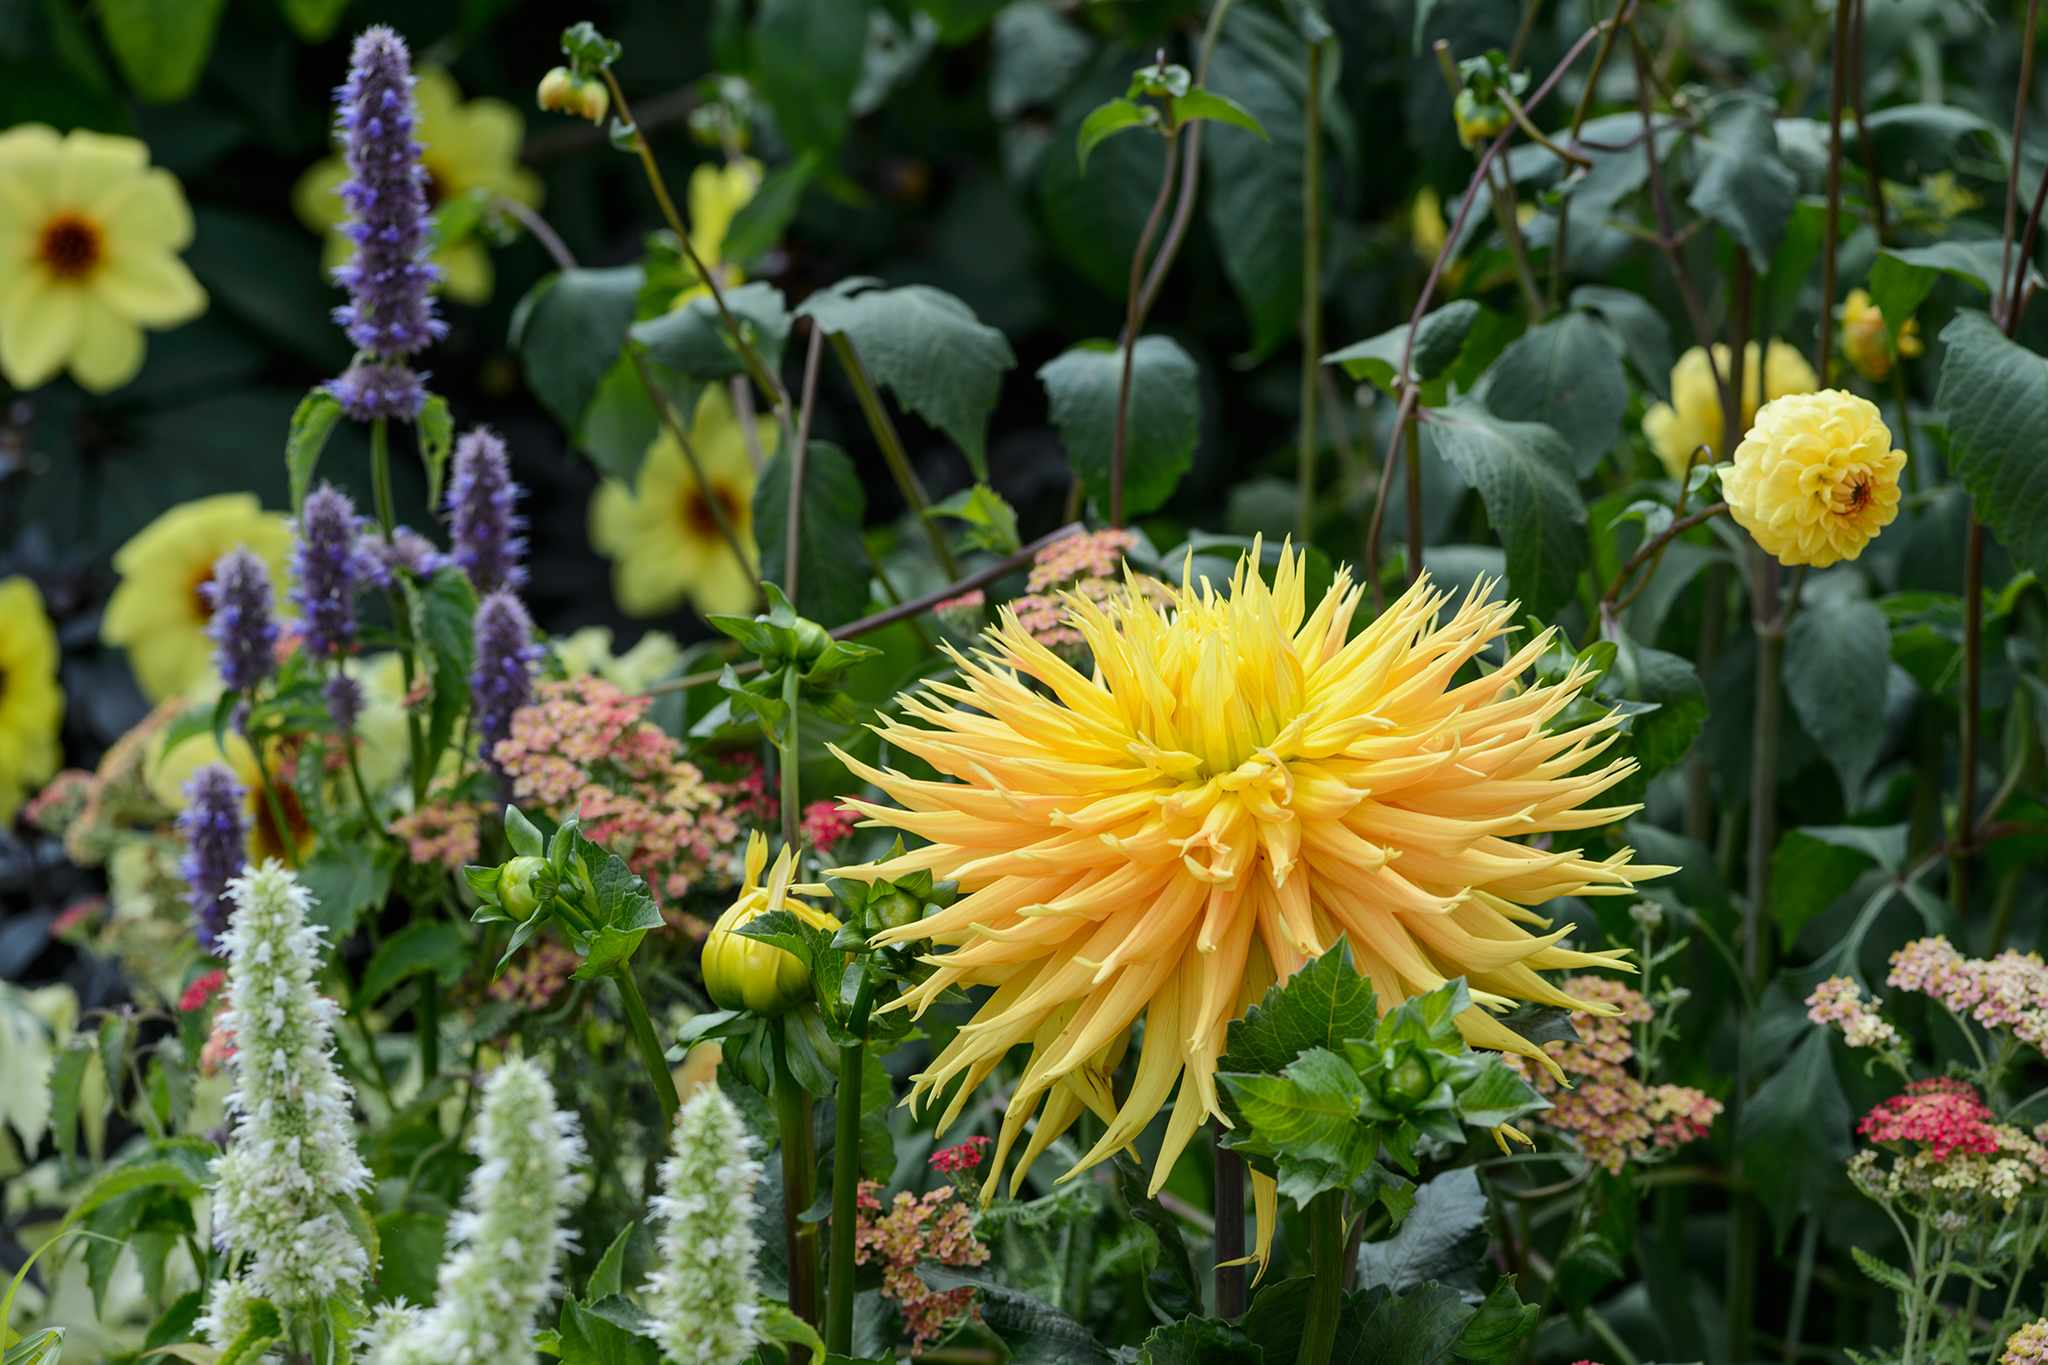 Yellow-flowered dahlias - yellow cactus growing among other herbaceous plants